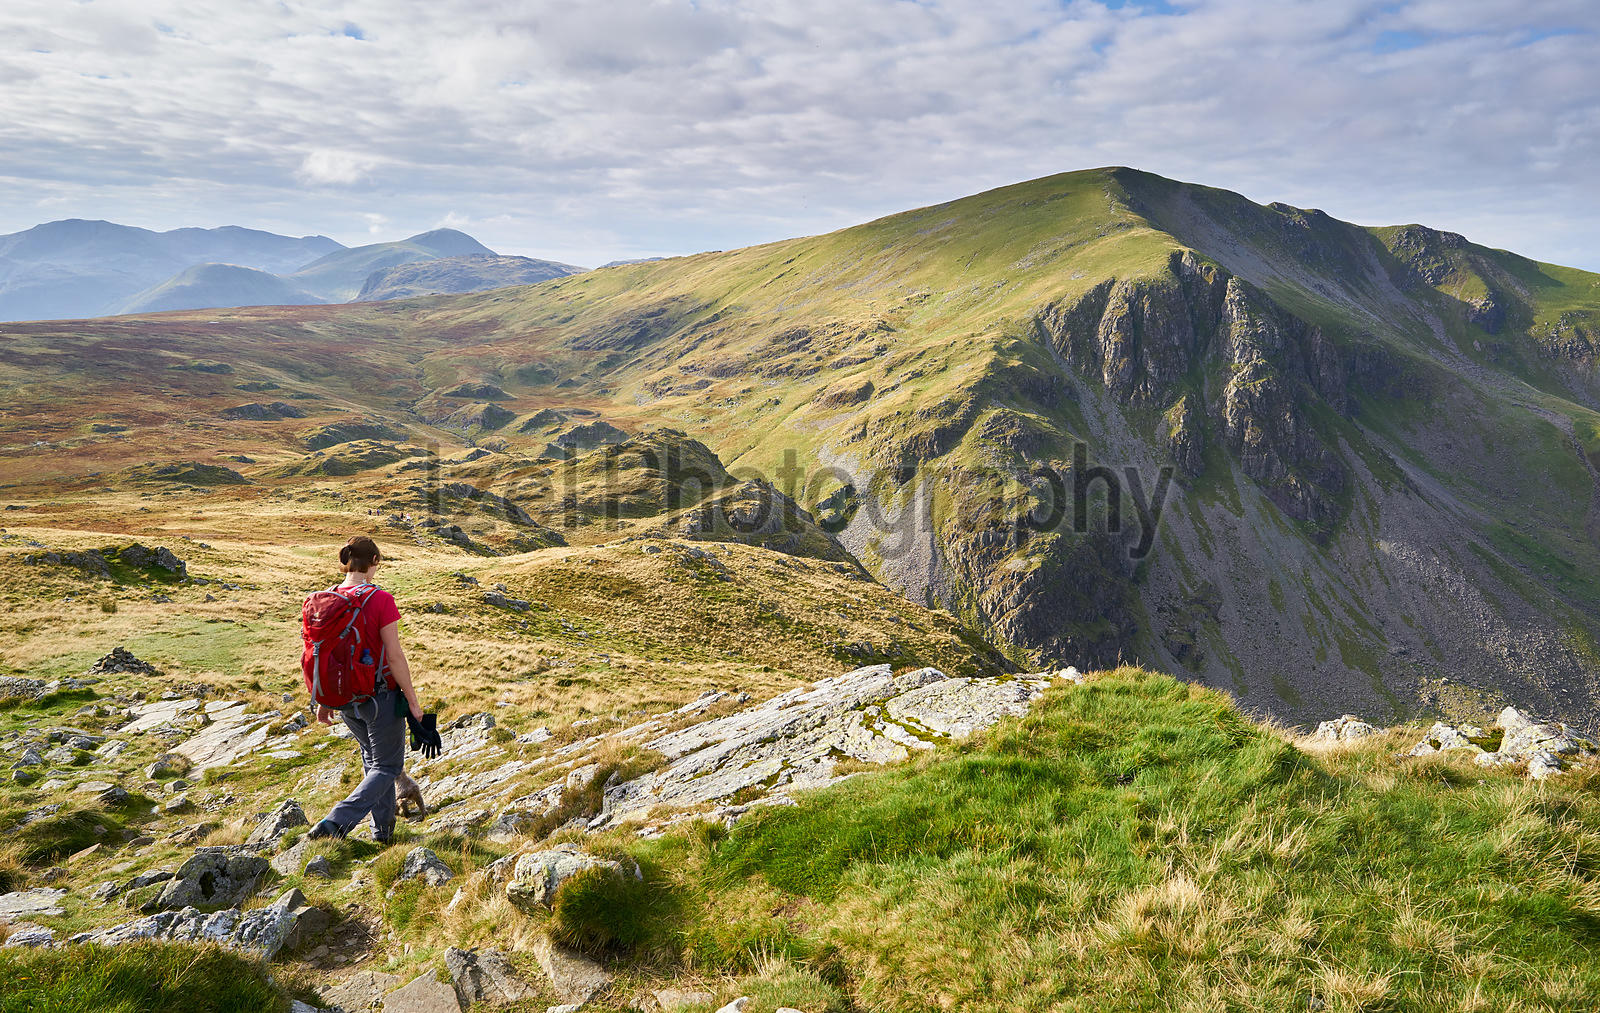 A hiker descending from High Spy towards the summit of Dale Head in the Lake District, England, UK.